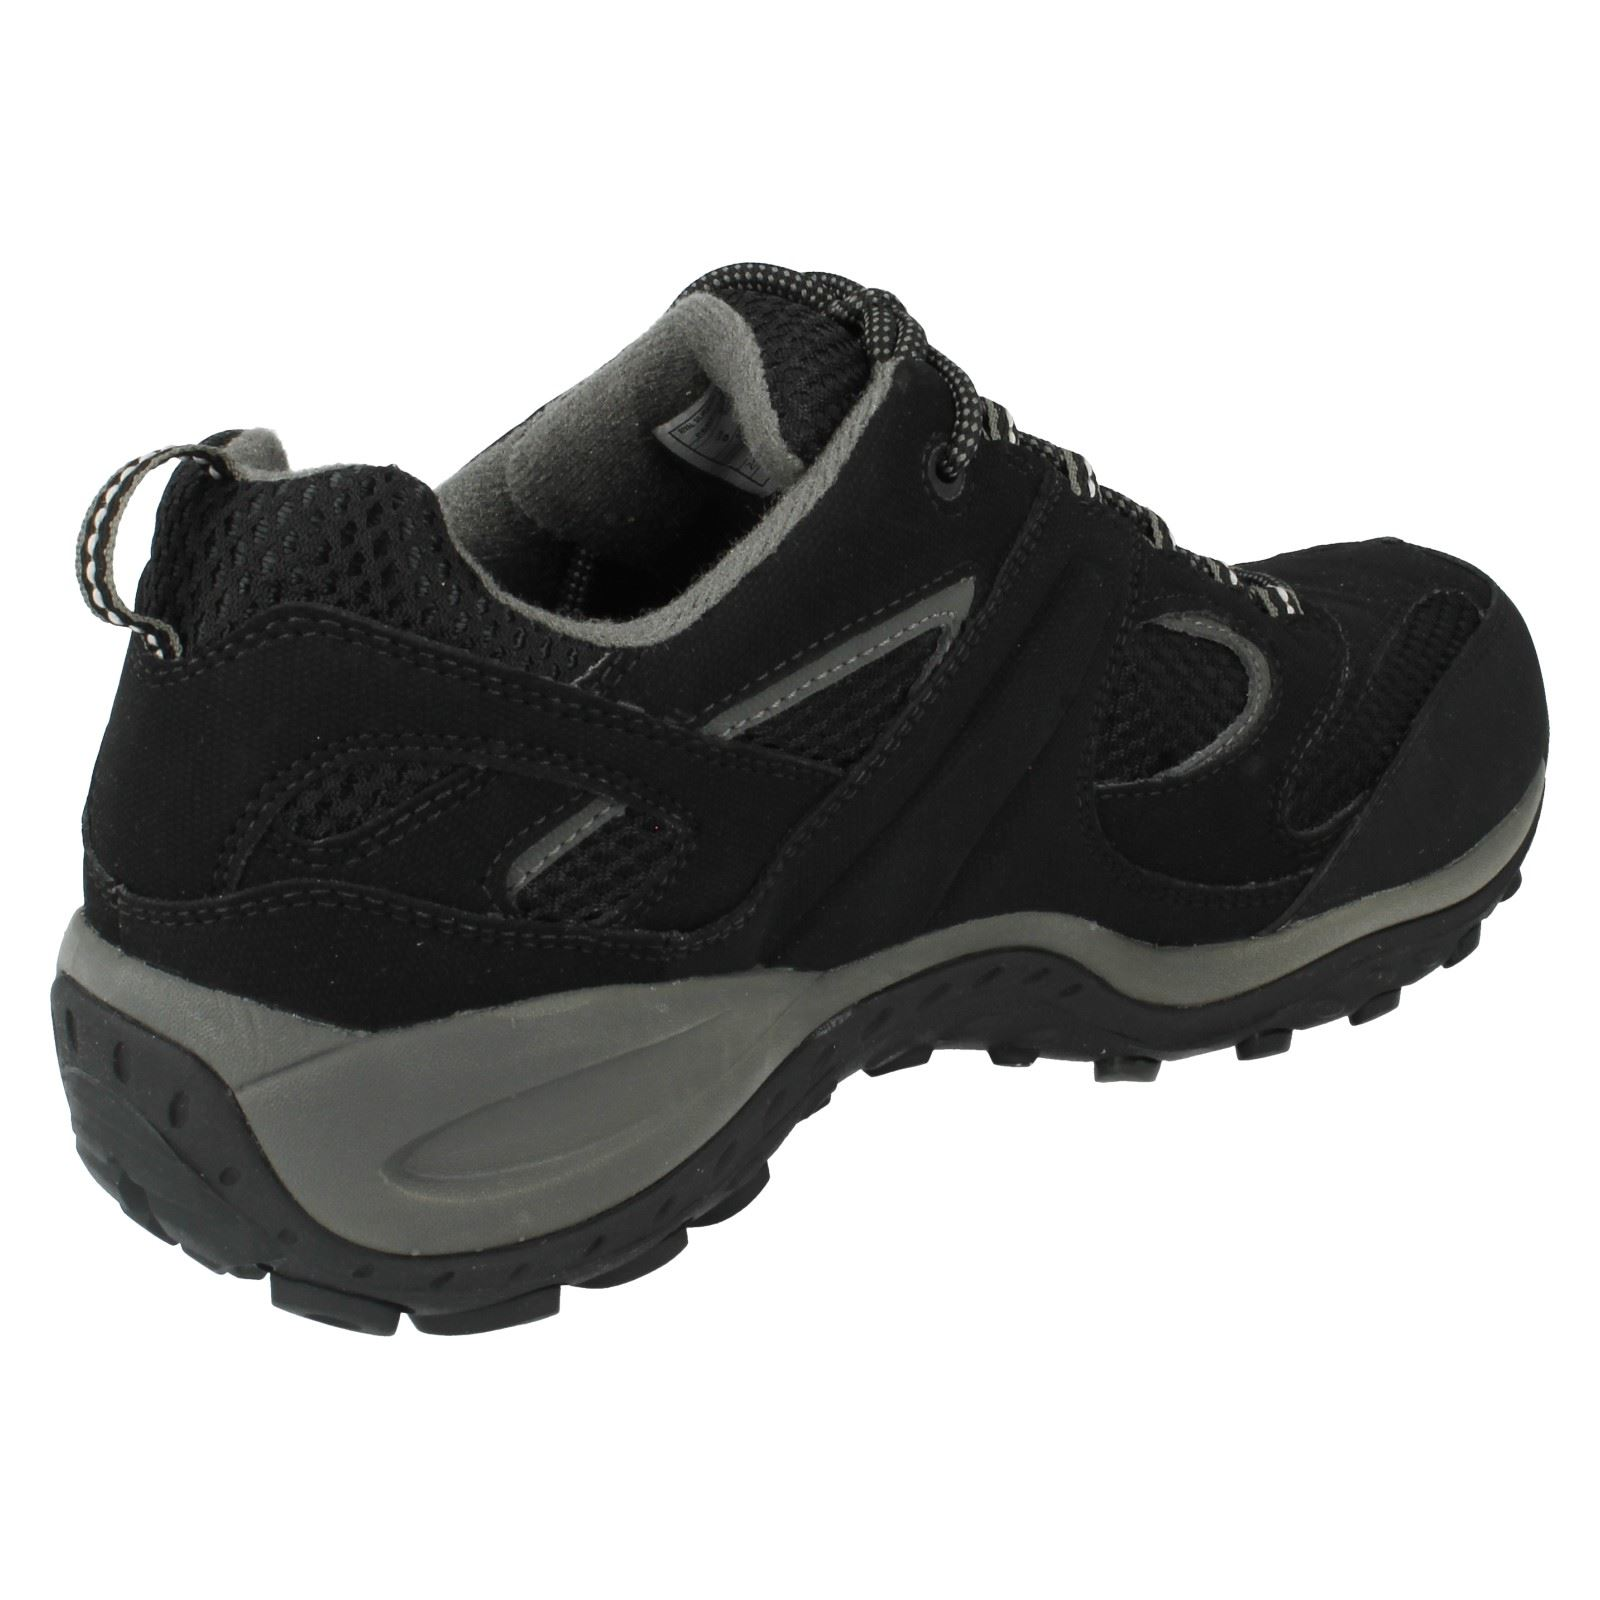 Black Shoes Style J584783 Mens Merrell Casual tq1xxXE